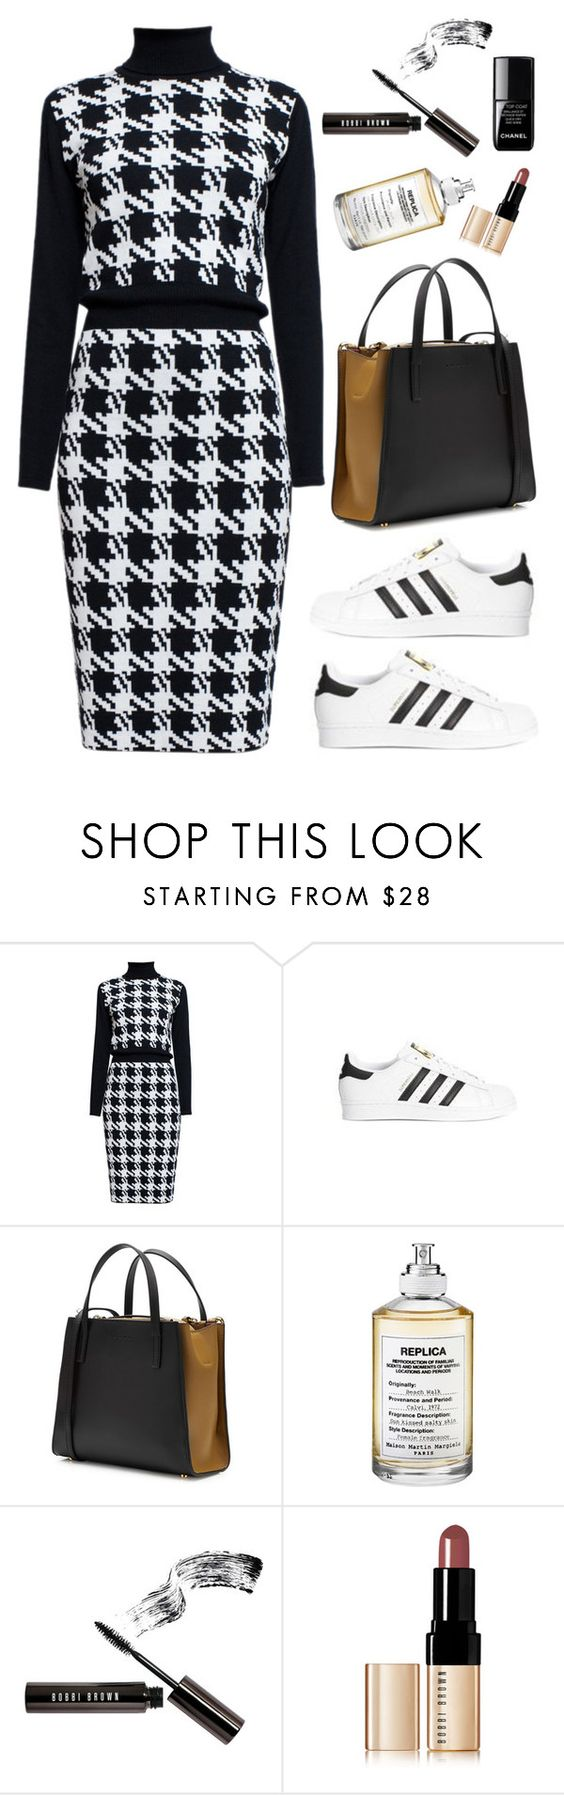 """""""Rumour London - LINA Houndstooth Merino Wool Dress"""" by thestyleartisan ❤ liked on Polyvore featuring Rumour London, Marni, Maison Margiela, Bobbi Brown Cosmetics, Chanel, women's clothing, women, female, woman and misses"""